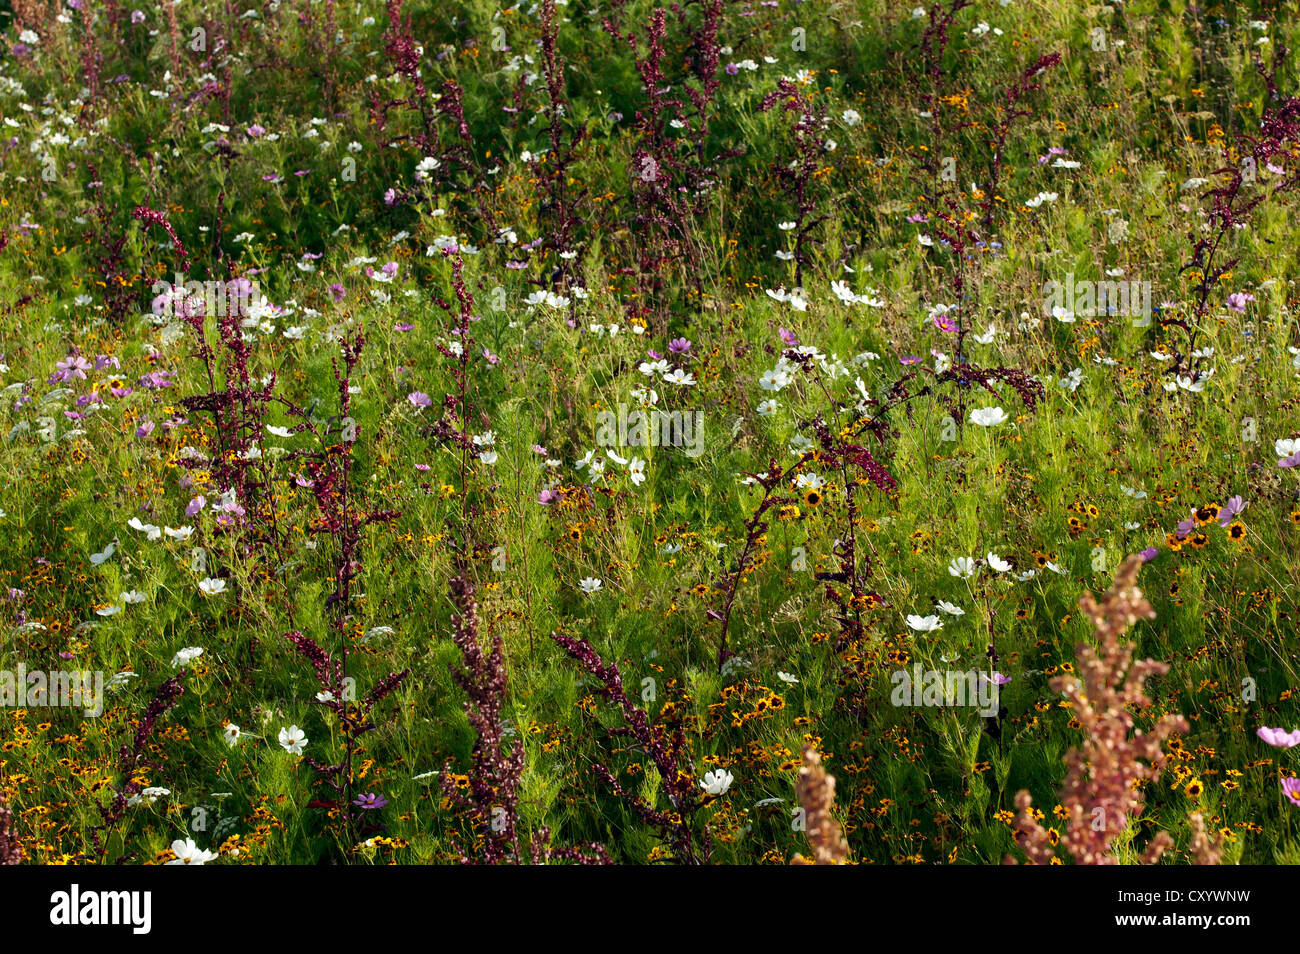 Close-up view of meadow flowers growing in the Great British Garden, at the Olympic Park, Stratford. - Stock Image